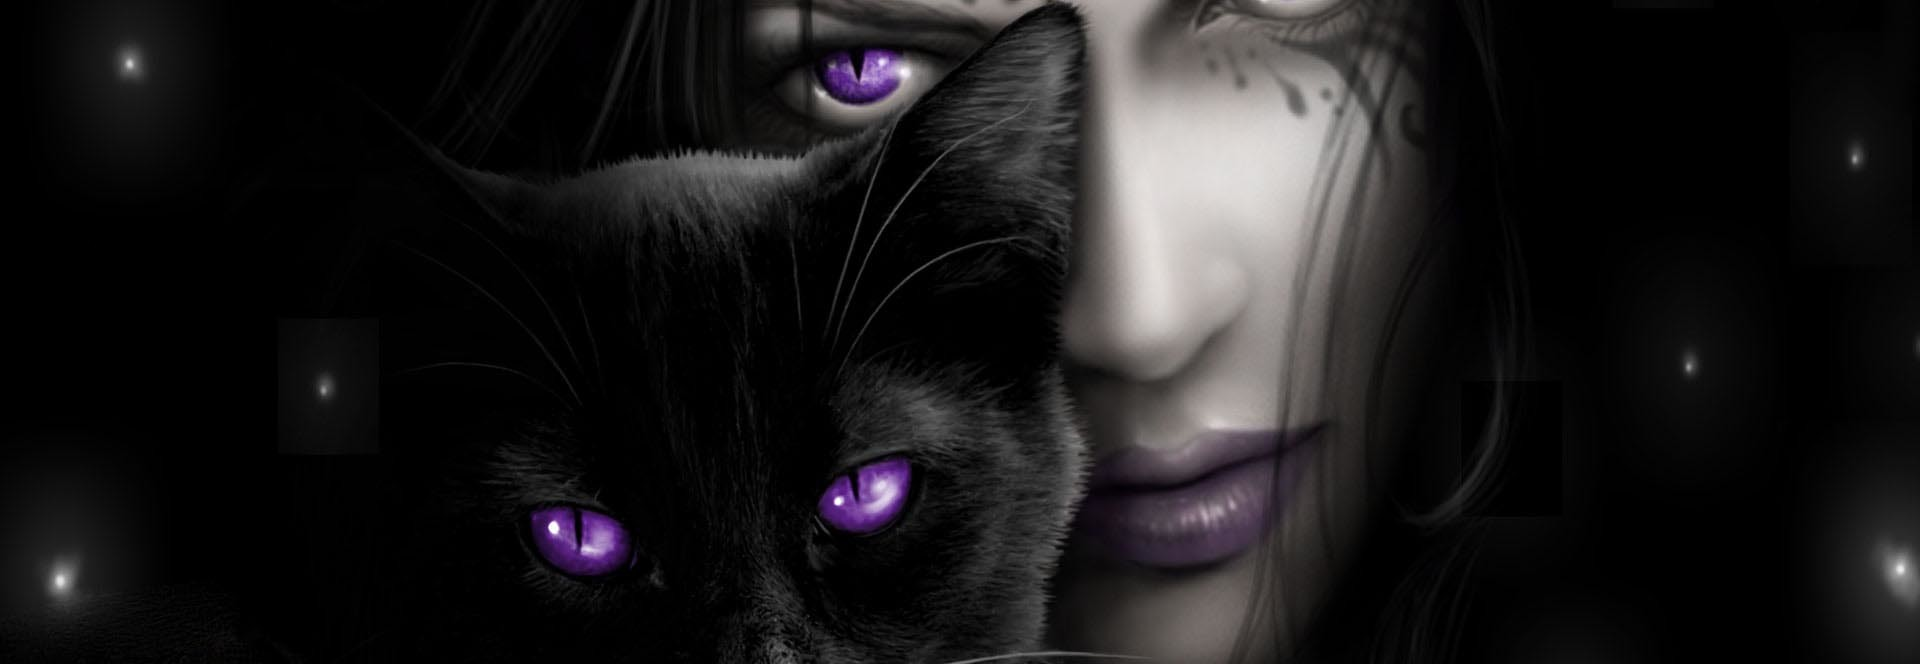 Cat Familiar | Witchcraft - Pagan, Wiccan, Occult and Magic